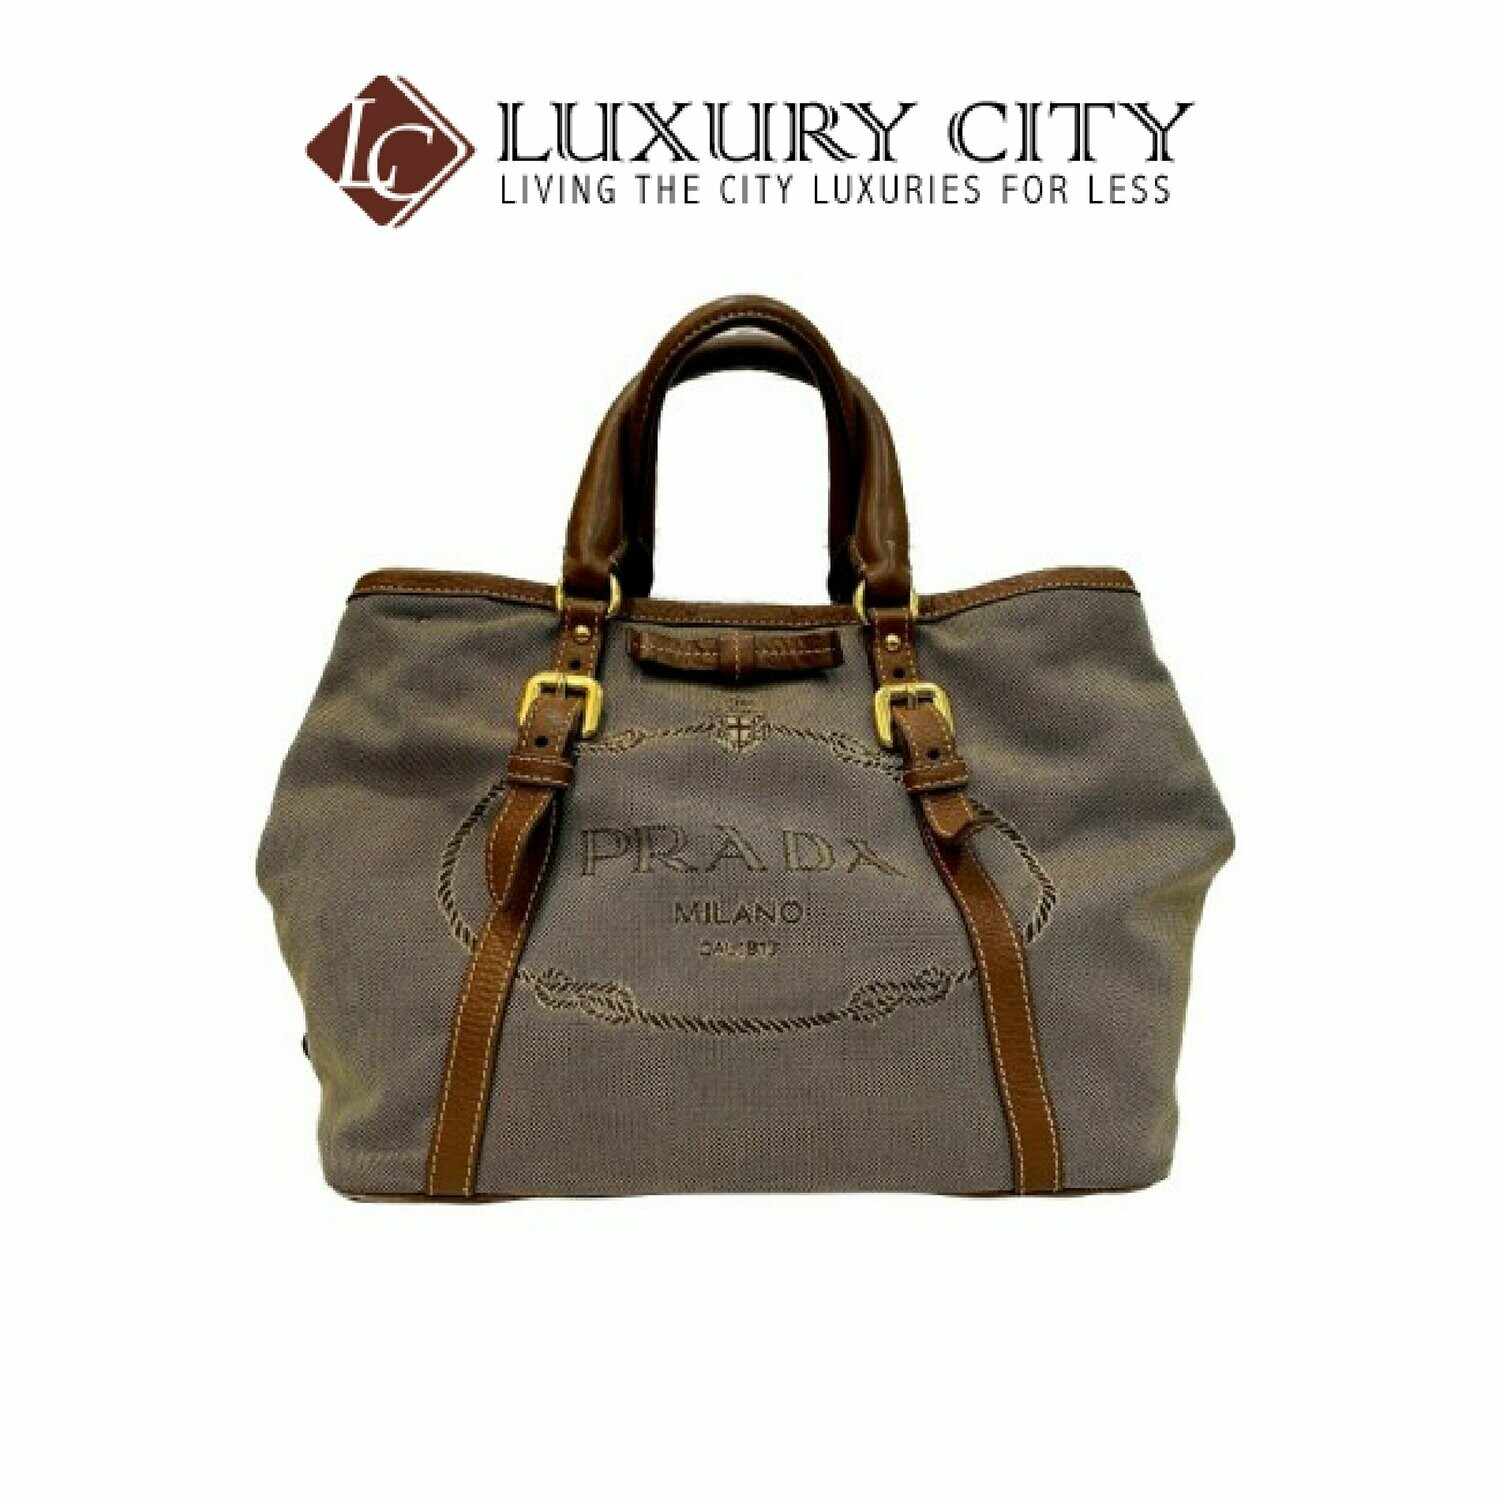 [Luxury City] Preloved Authentic Prada Bauletto Aperto Jacquard Corda Brandy